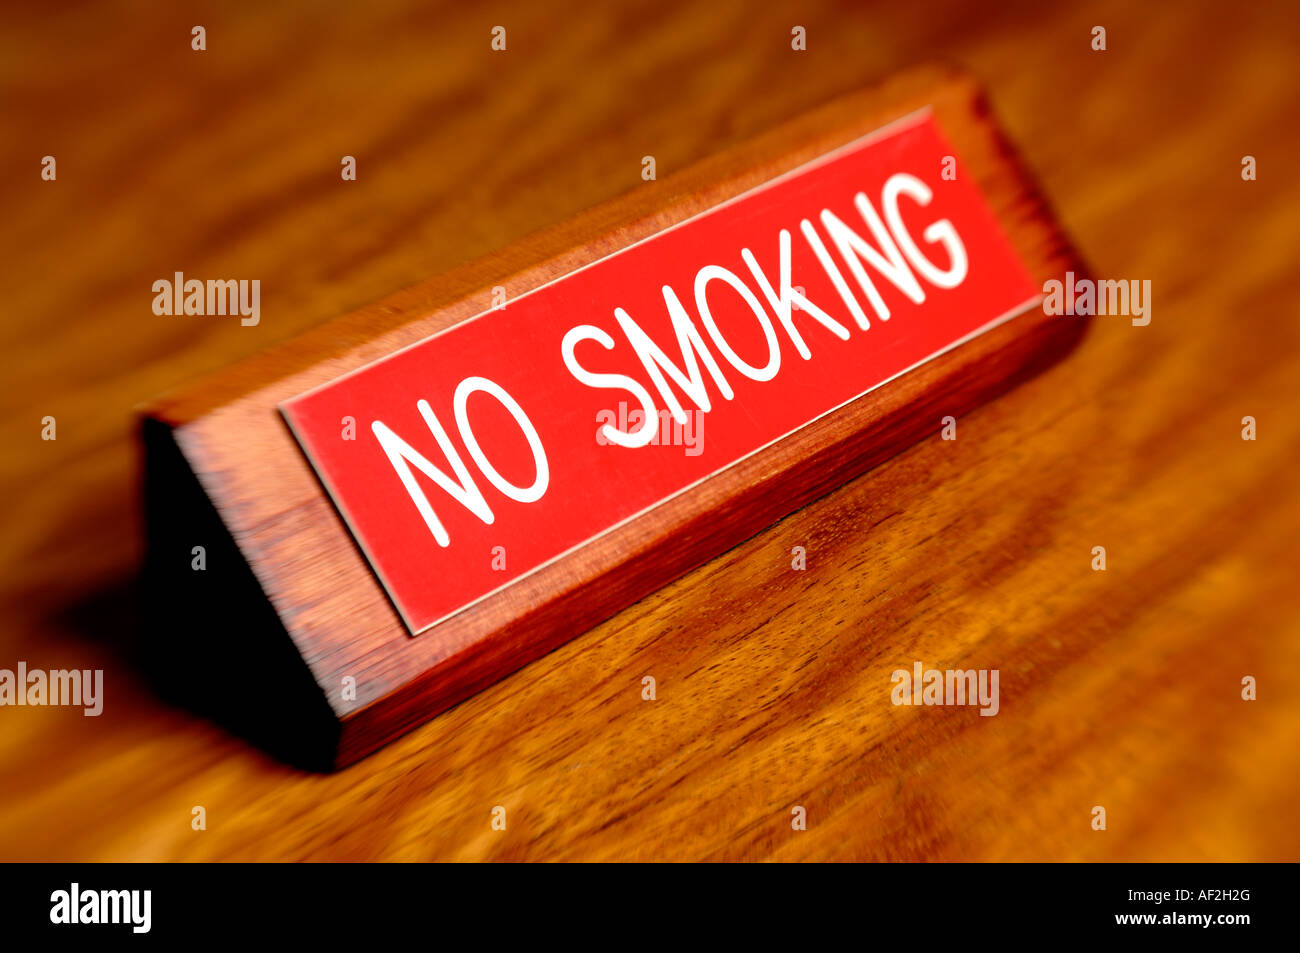 No Smoking sign - Stock Image